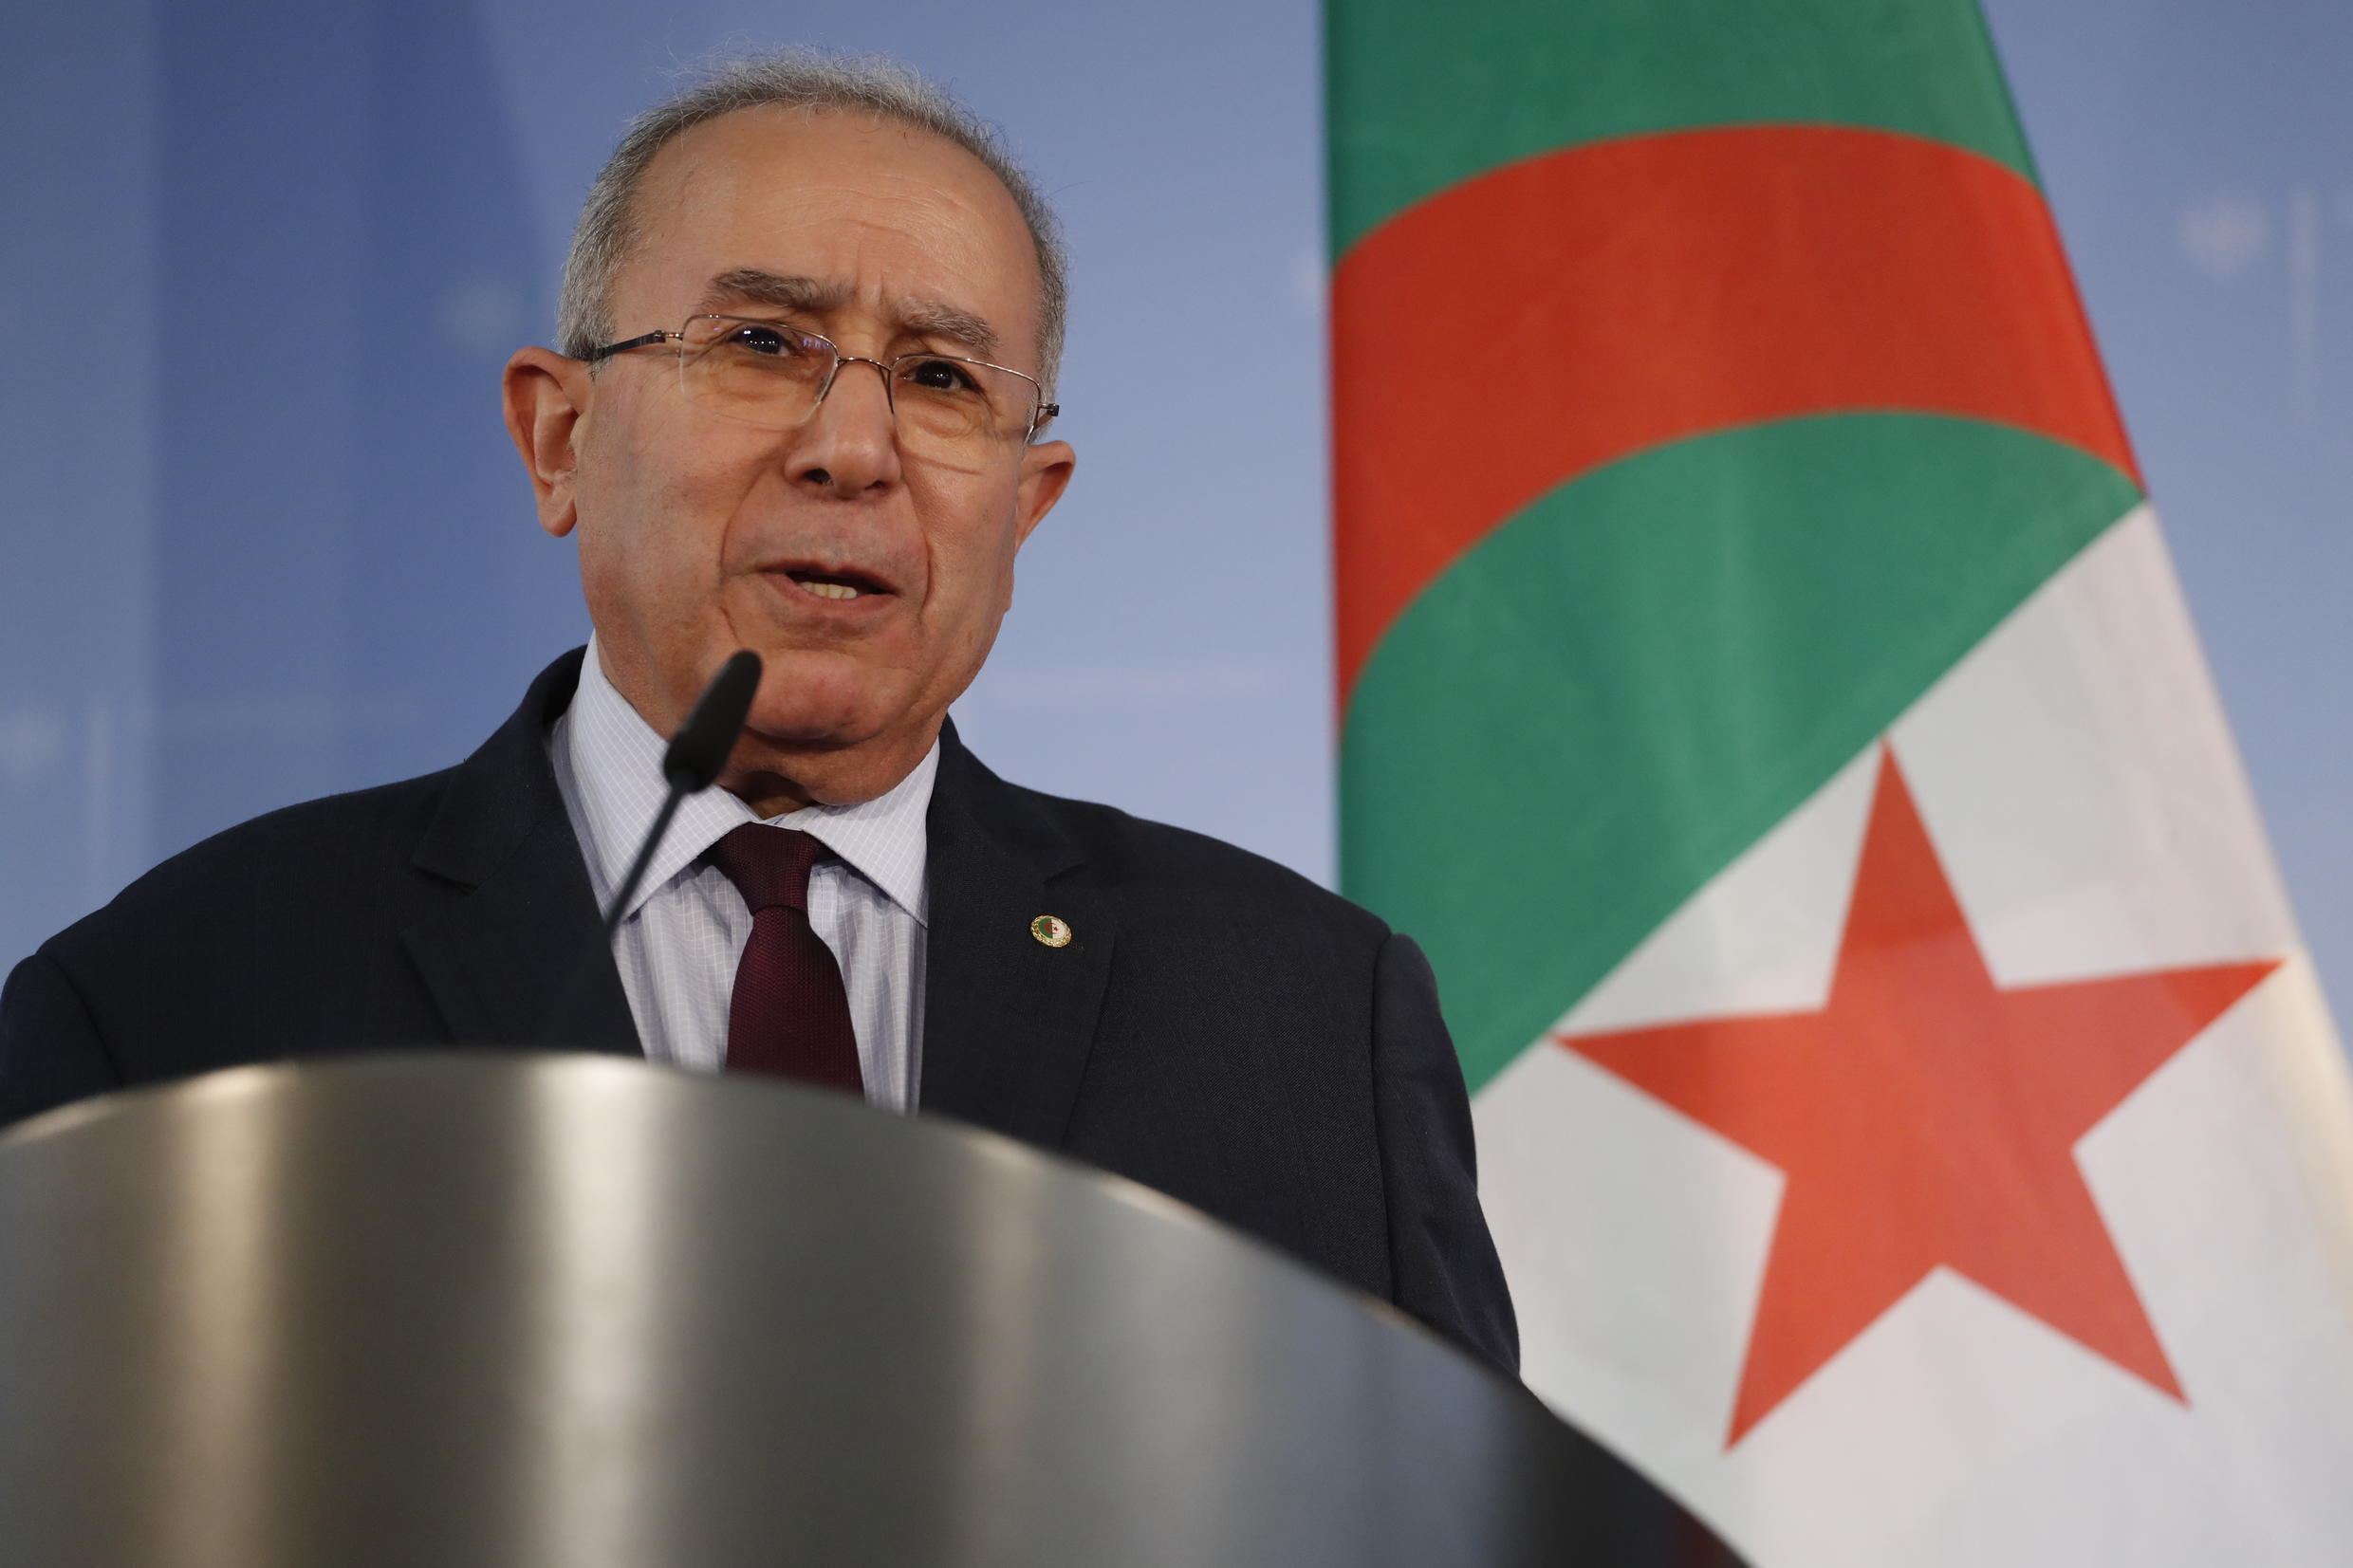 Ramtane Lamamra of Algeria has been a mediator in several African conflicts